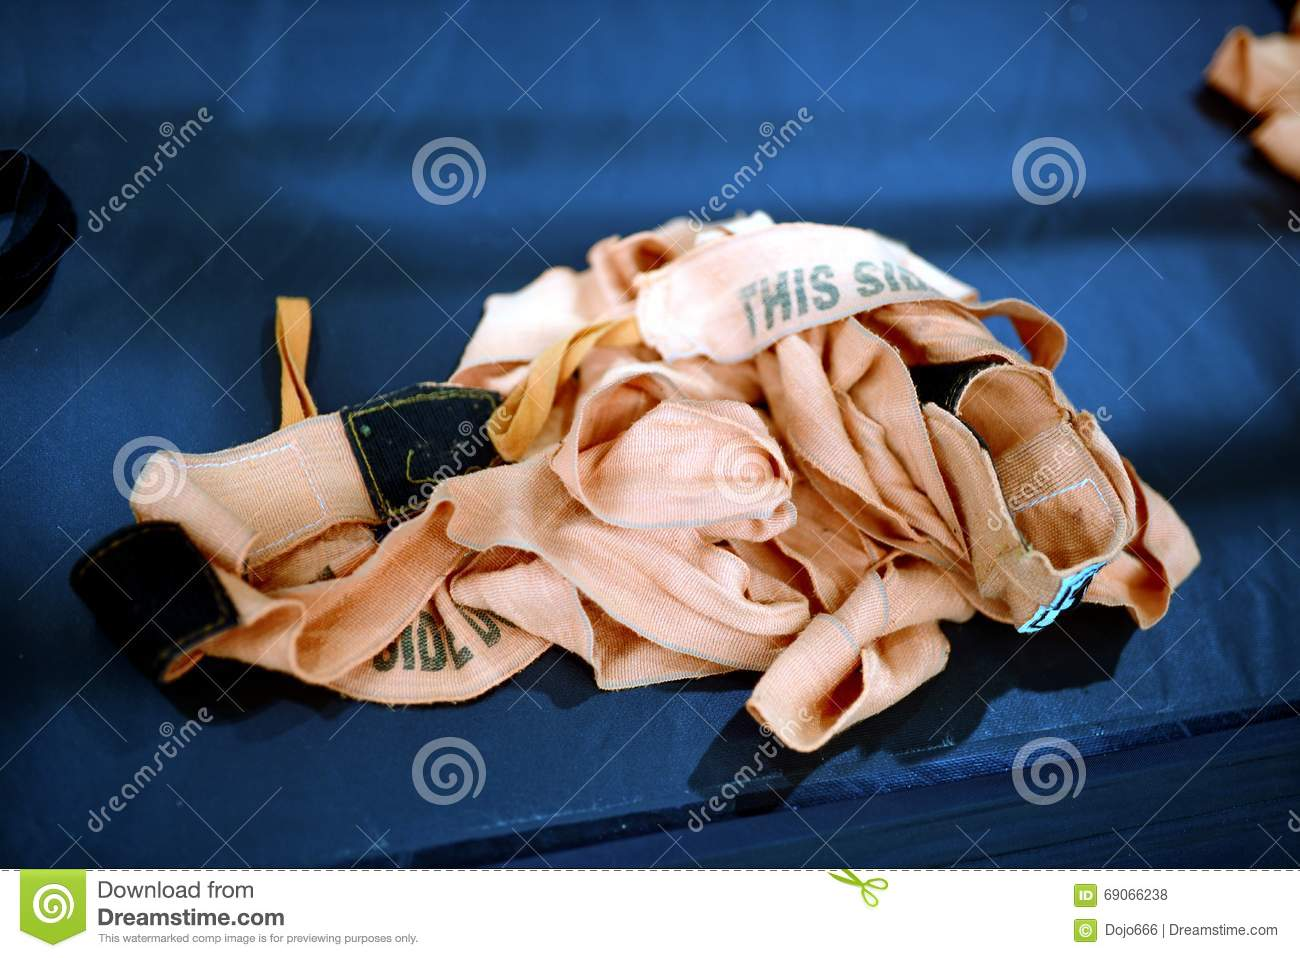 Inaccurately Thrown Sports Bandage Stock Photo - Image: 69066238